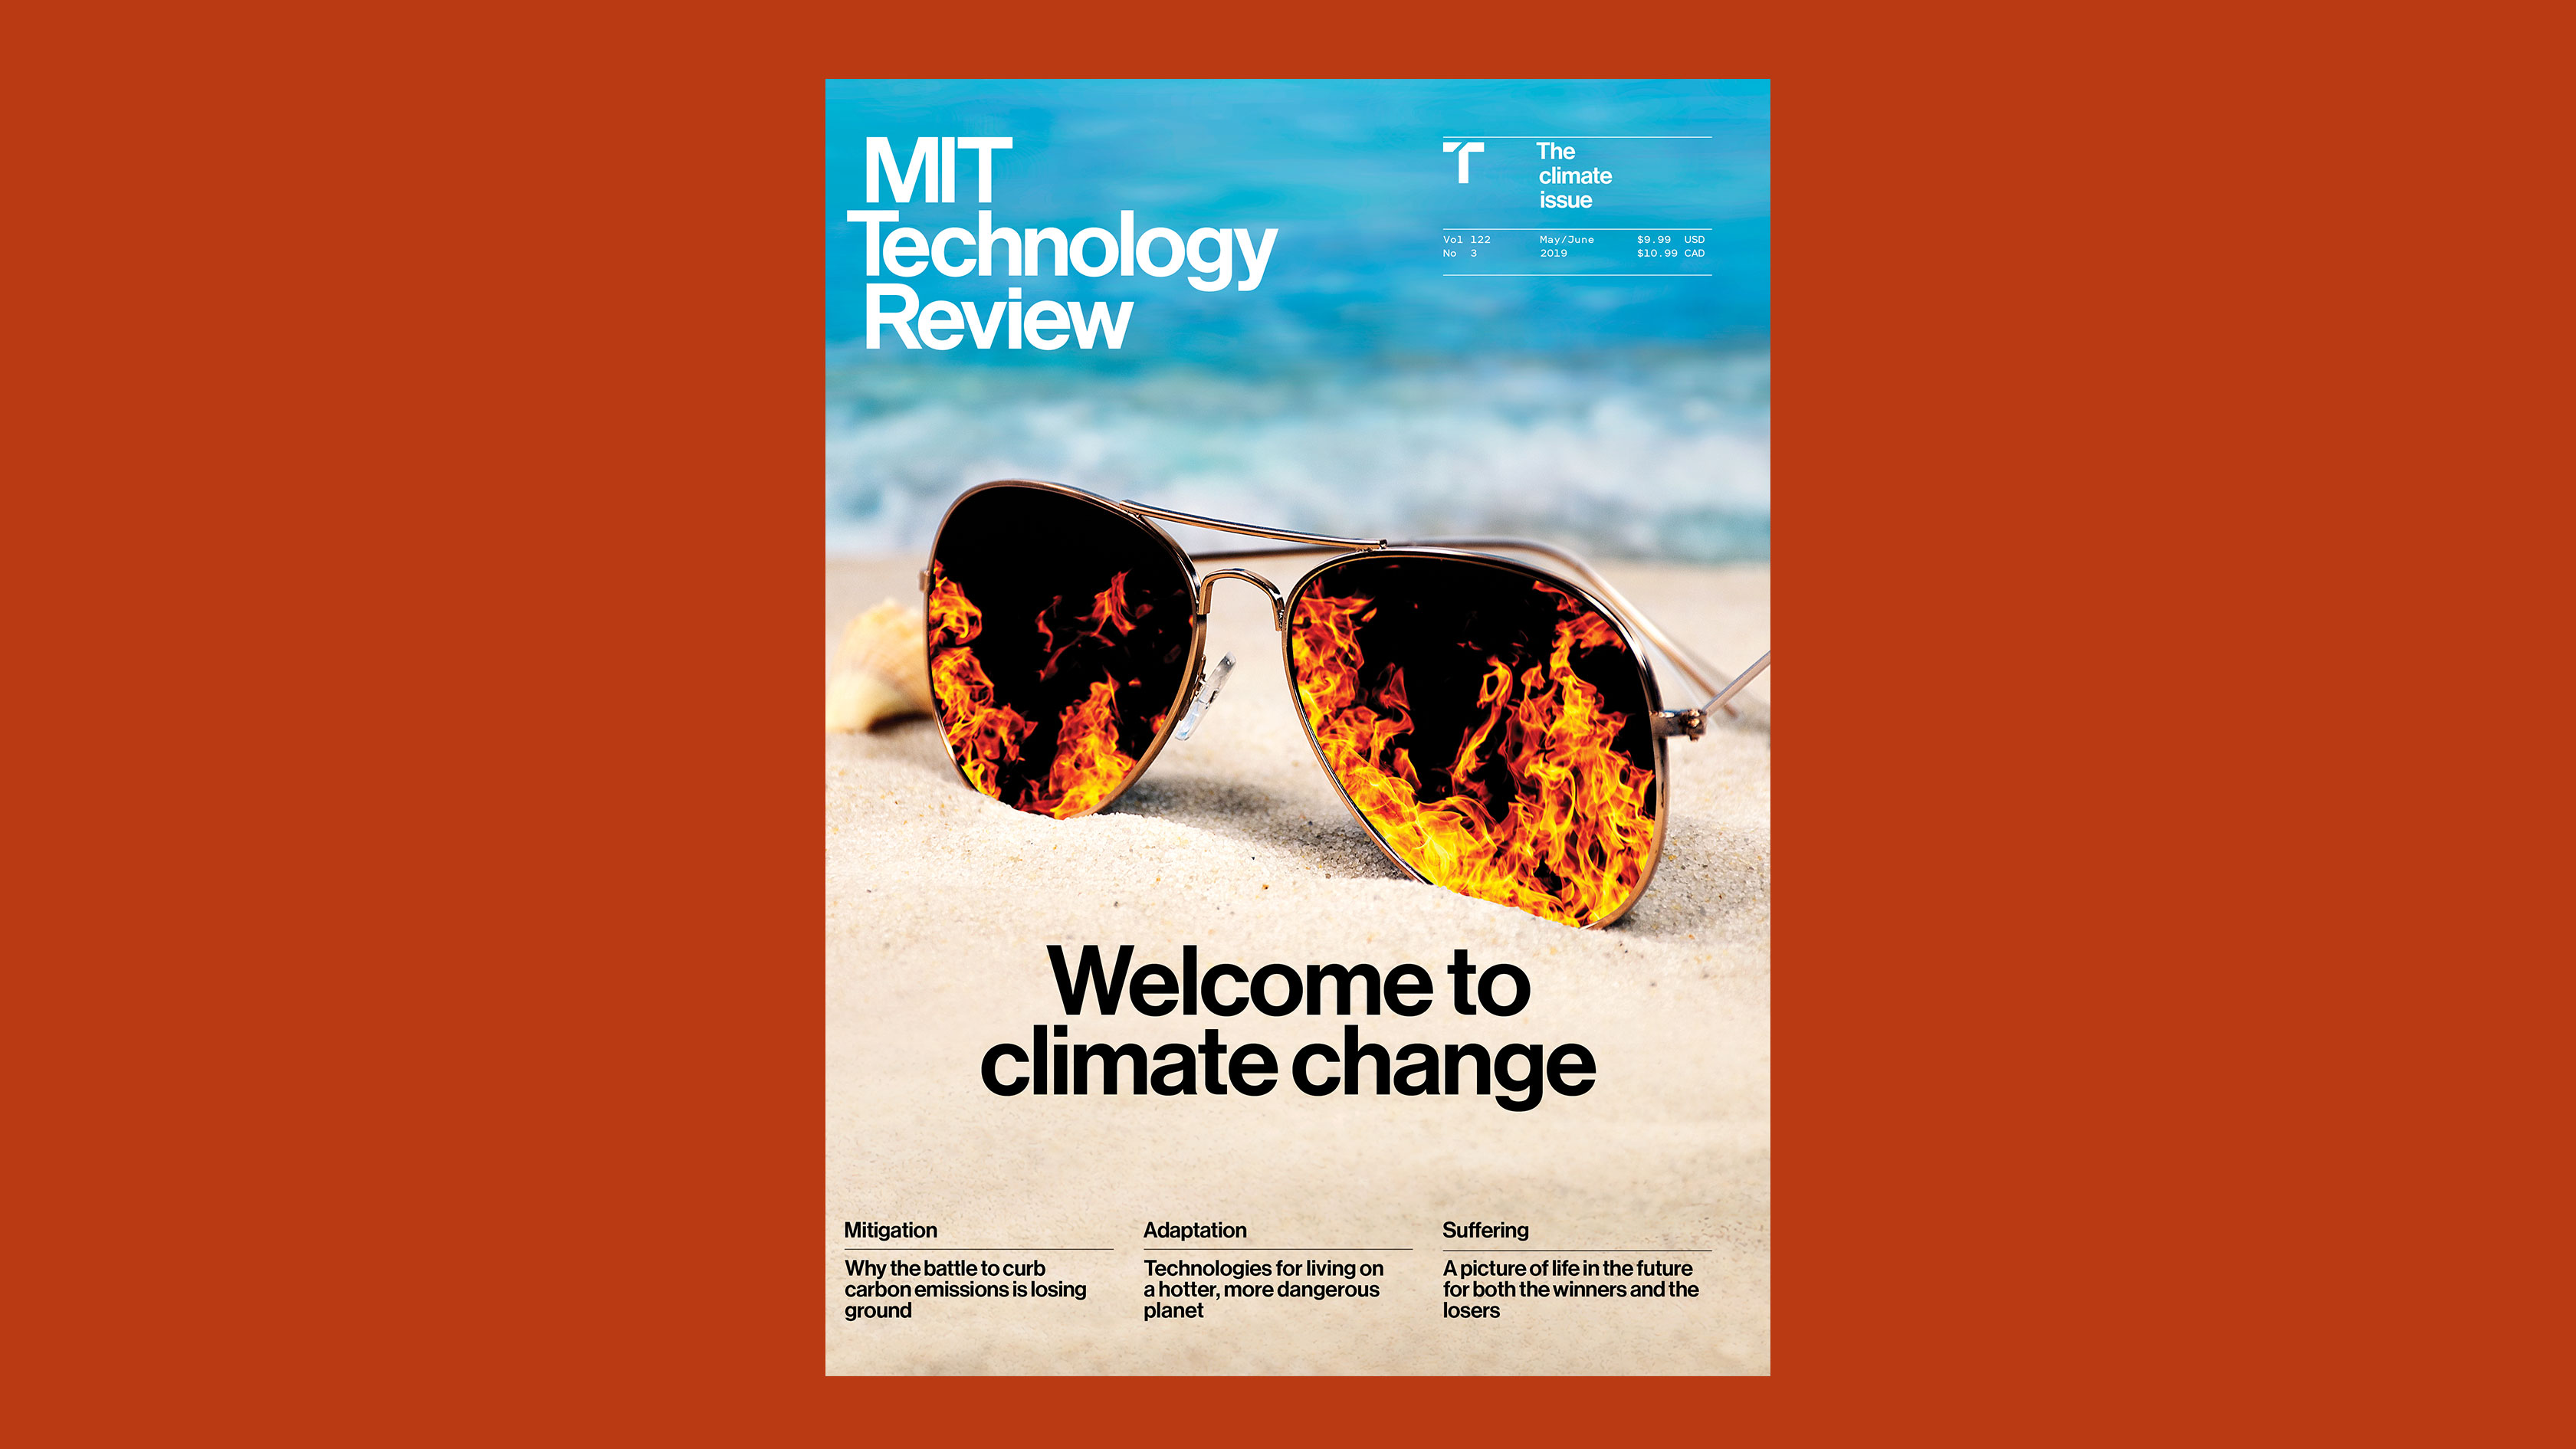 technologyreview.com - Gideon Lichfield - Welcome to climate change